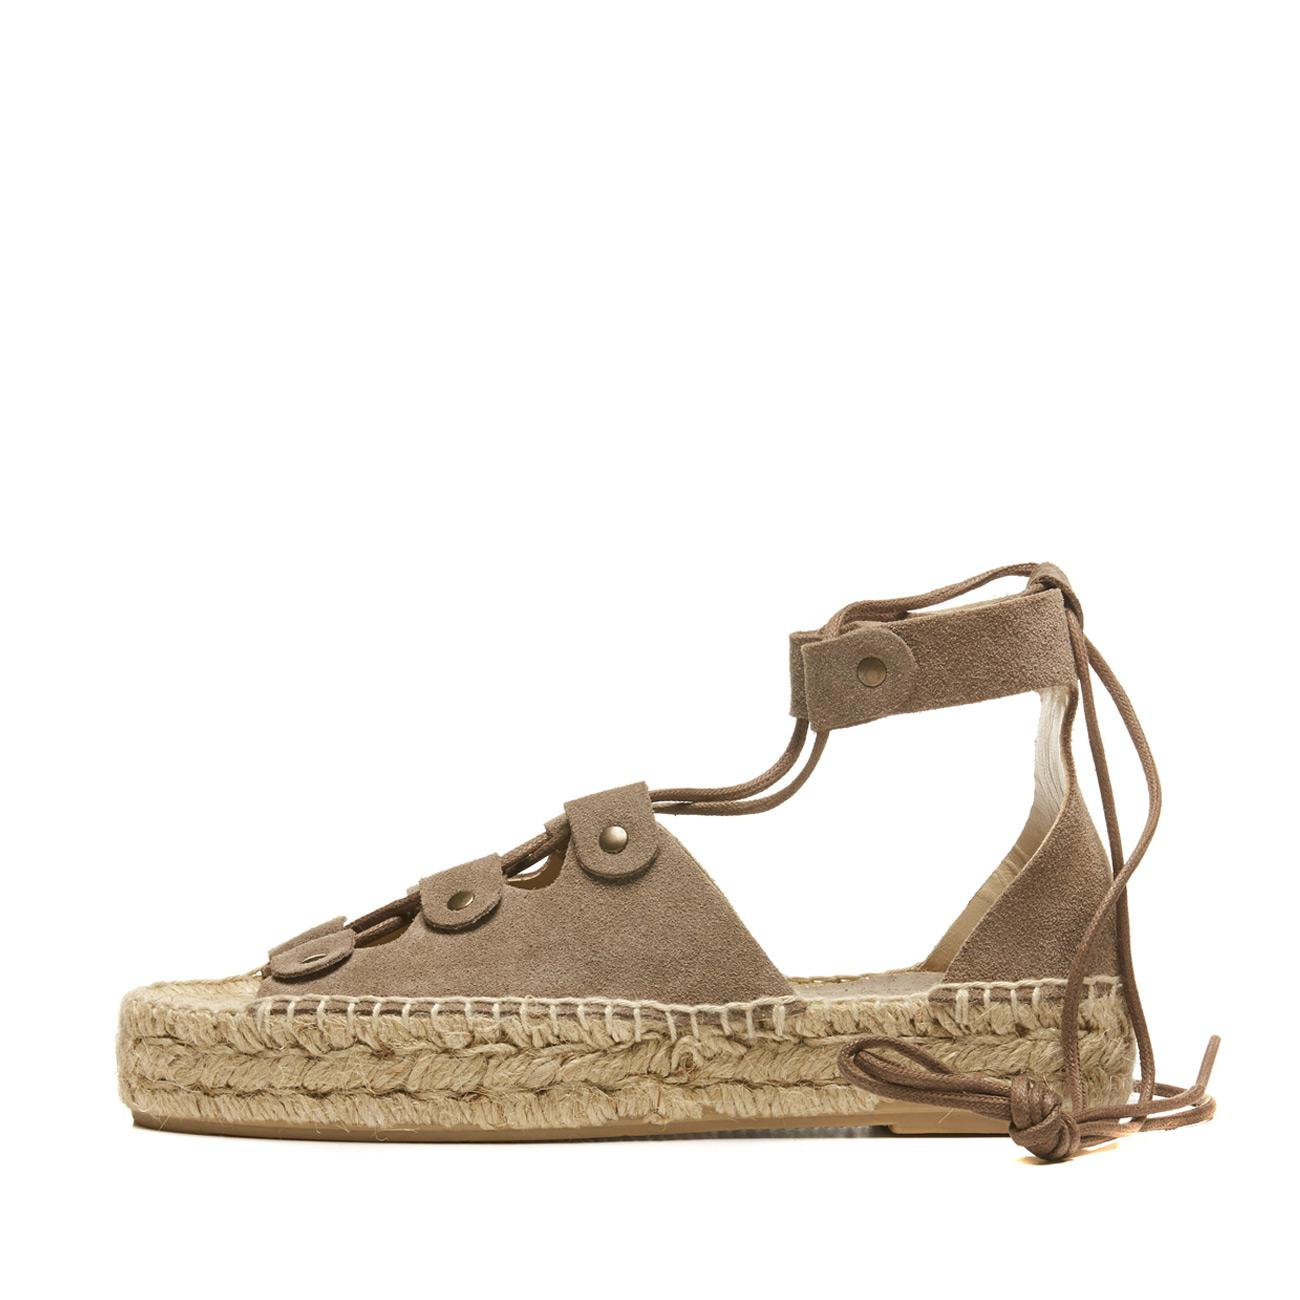 96aa6c256fe Lyst - Soludos Ghillie Lace-up Suede Platform Sandal